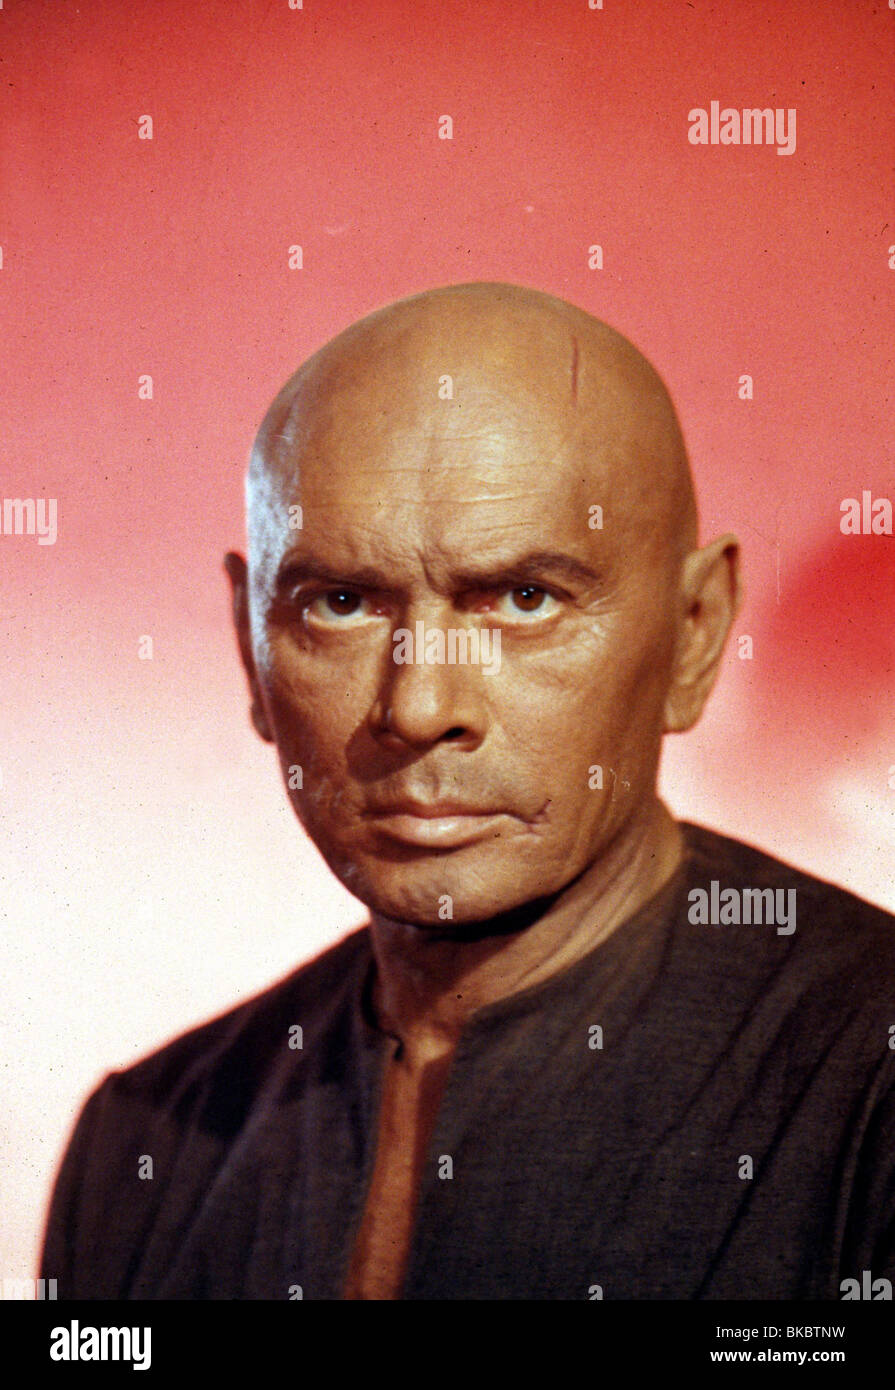 THE ULTIMATE WARRIOR (1975) YUL BRYNNER ULW 016 - Stock Image